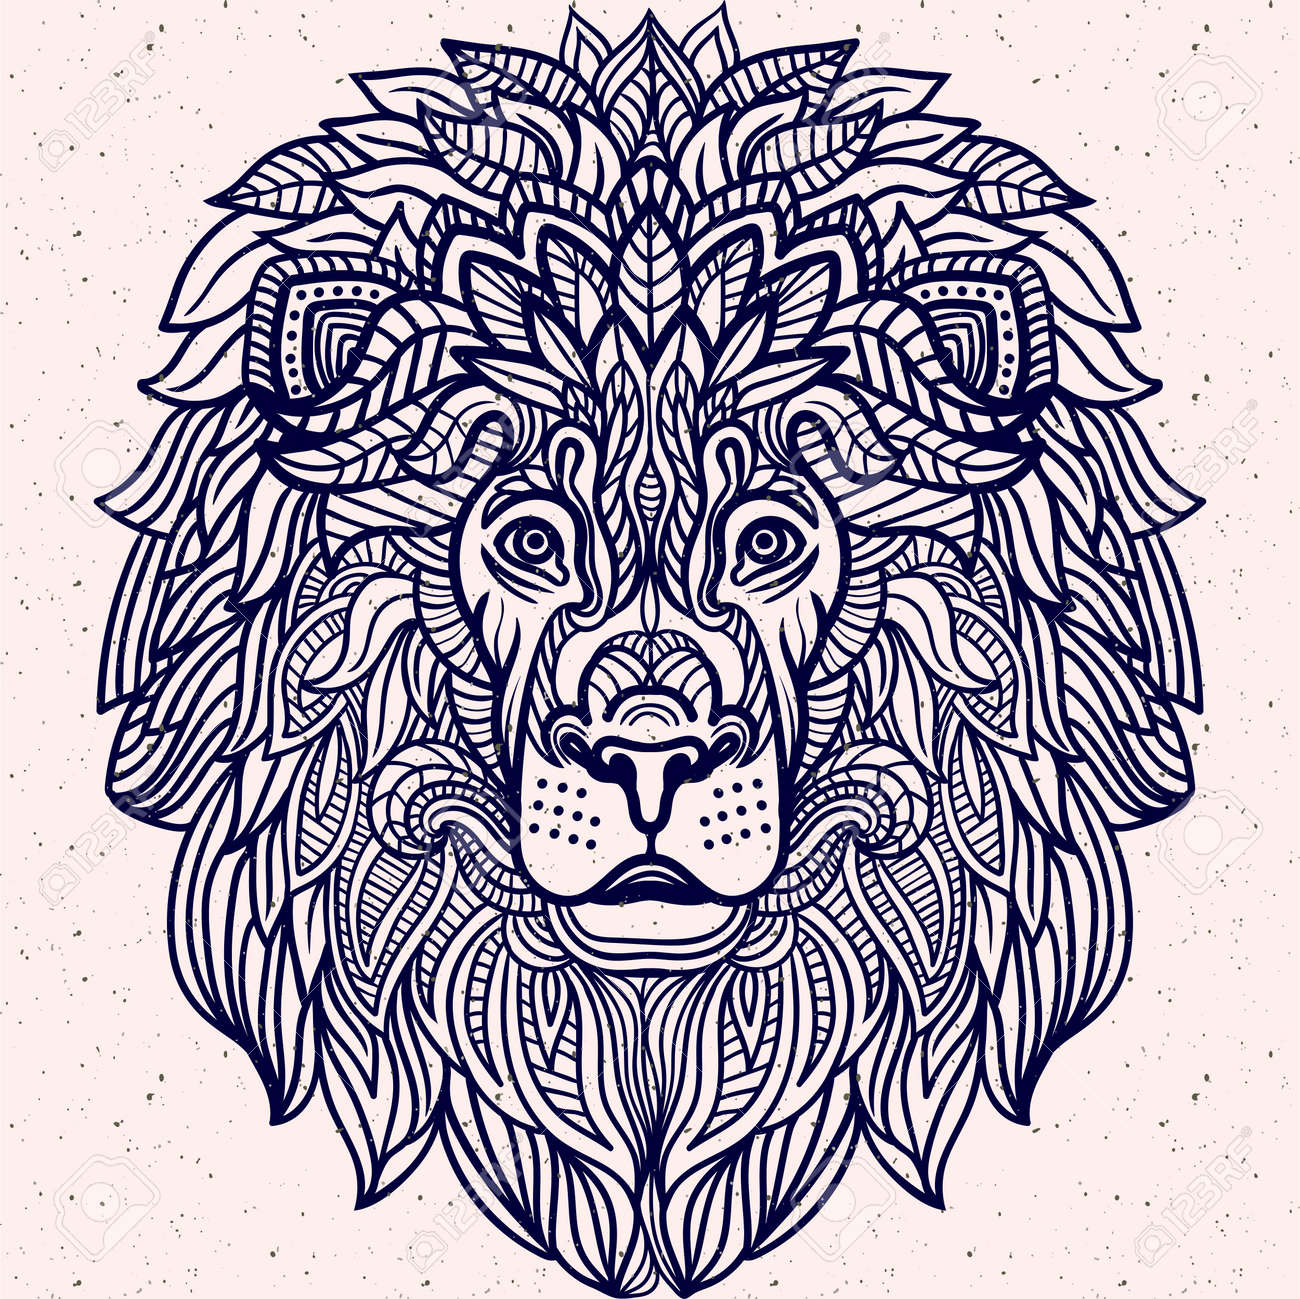 Detailed Lion In Aztec Filigree Line Art Style Tattoo Coloring Page For Adult